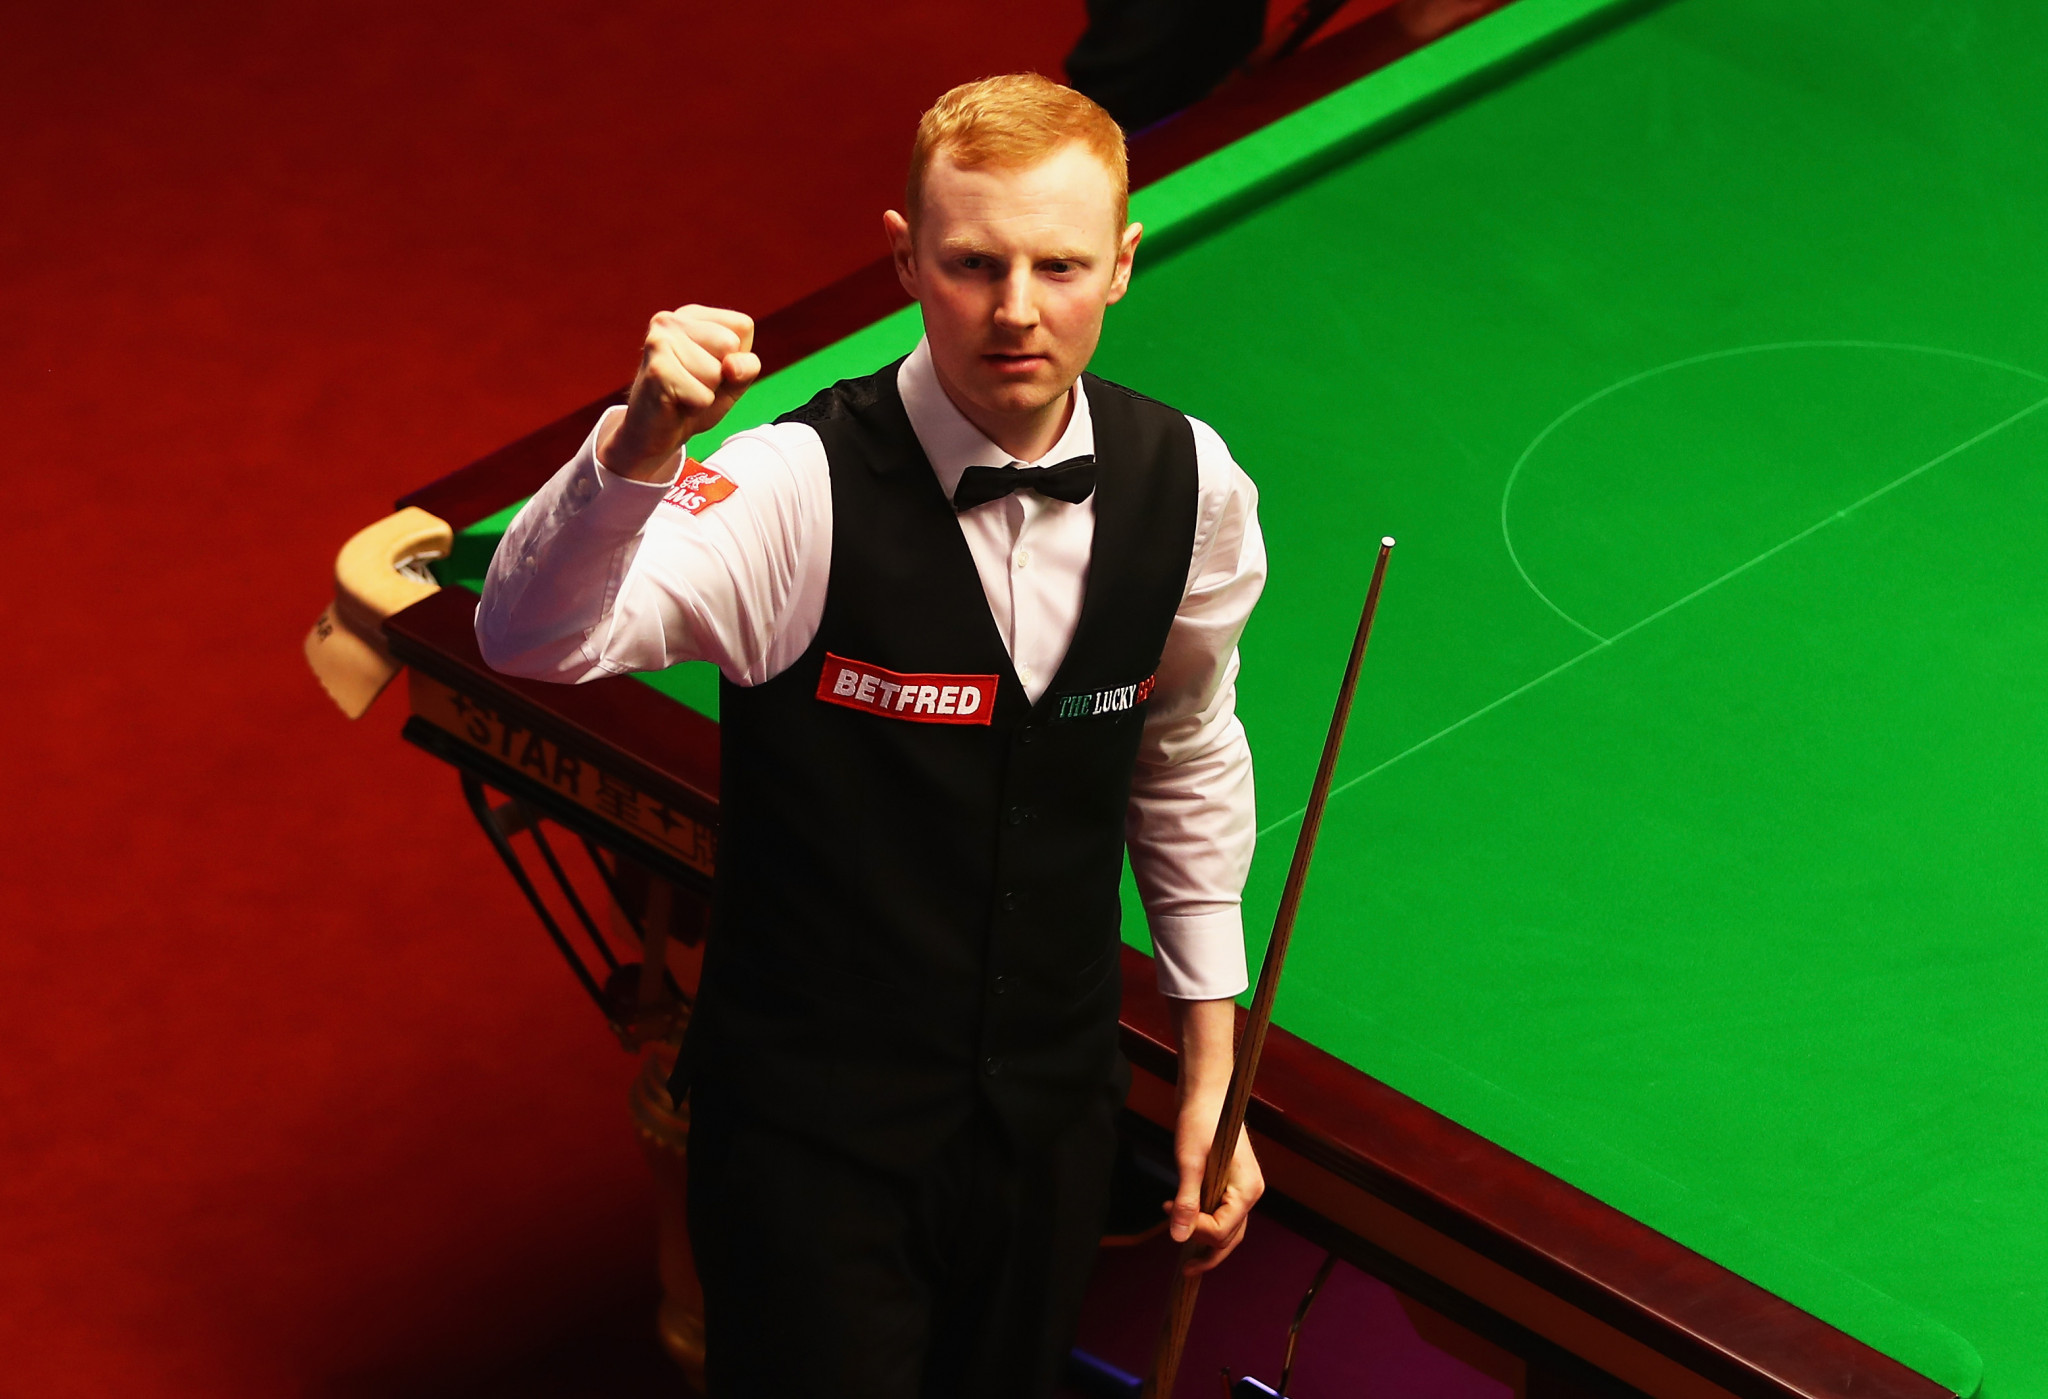 McGill produces impressive comeback to reach second round of World Snooker Championships